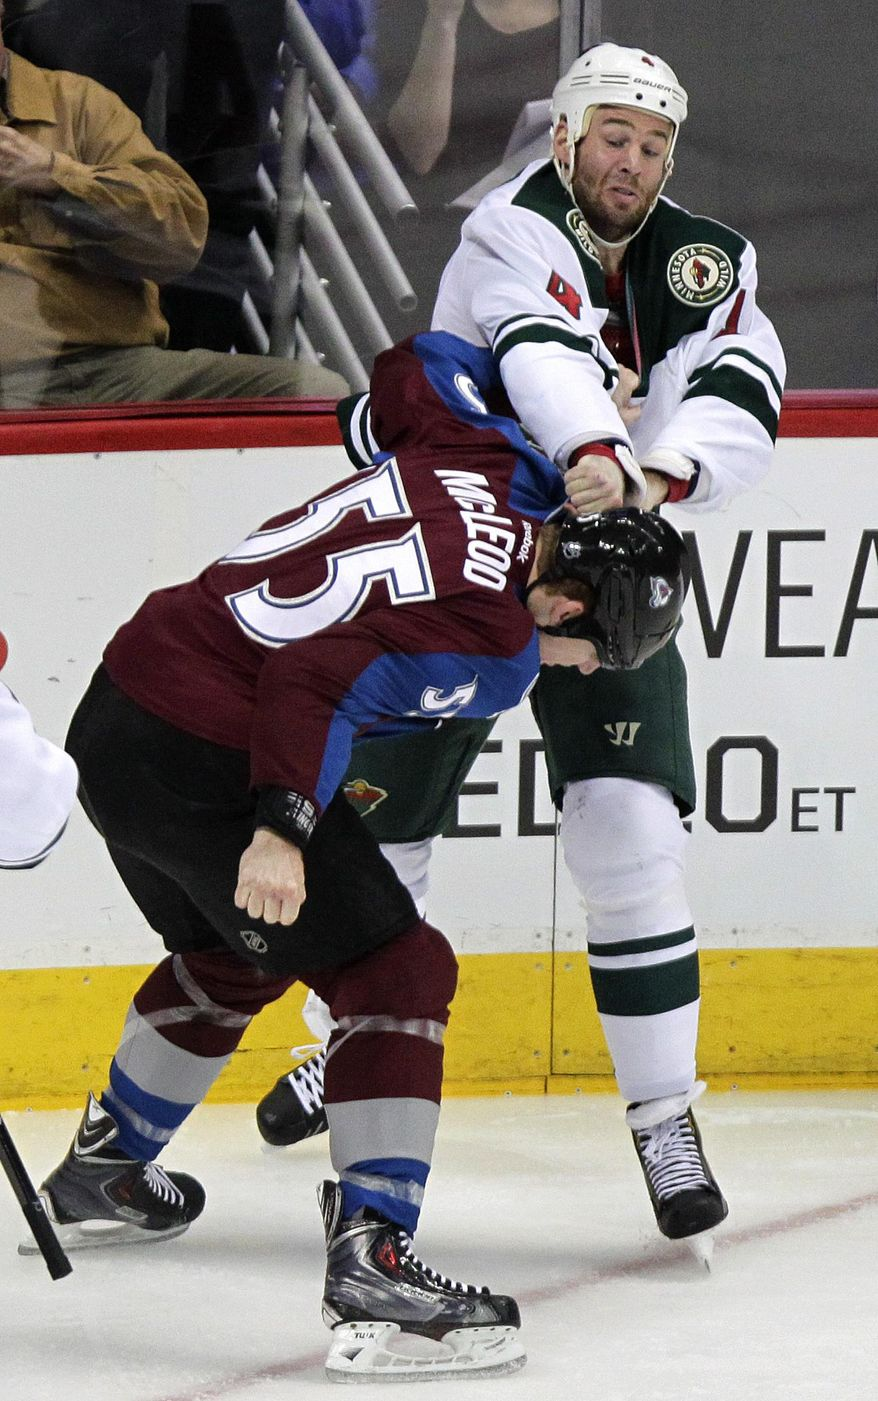 Minnesota Wild's Clayton Stoner, top, takes a swing at Colorado Avalanche's Cody McLeod, bottom, during the first period of an NHL hockey game Thursday, Jan. 30, 2014, in Denver. (AP Photo/Barry Gutierrez)